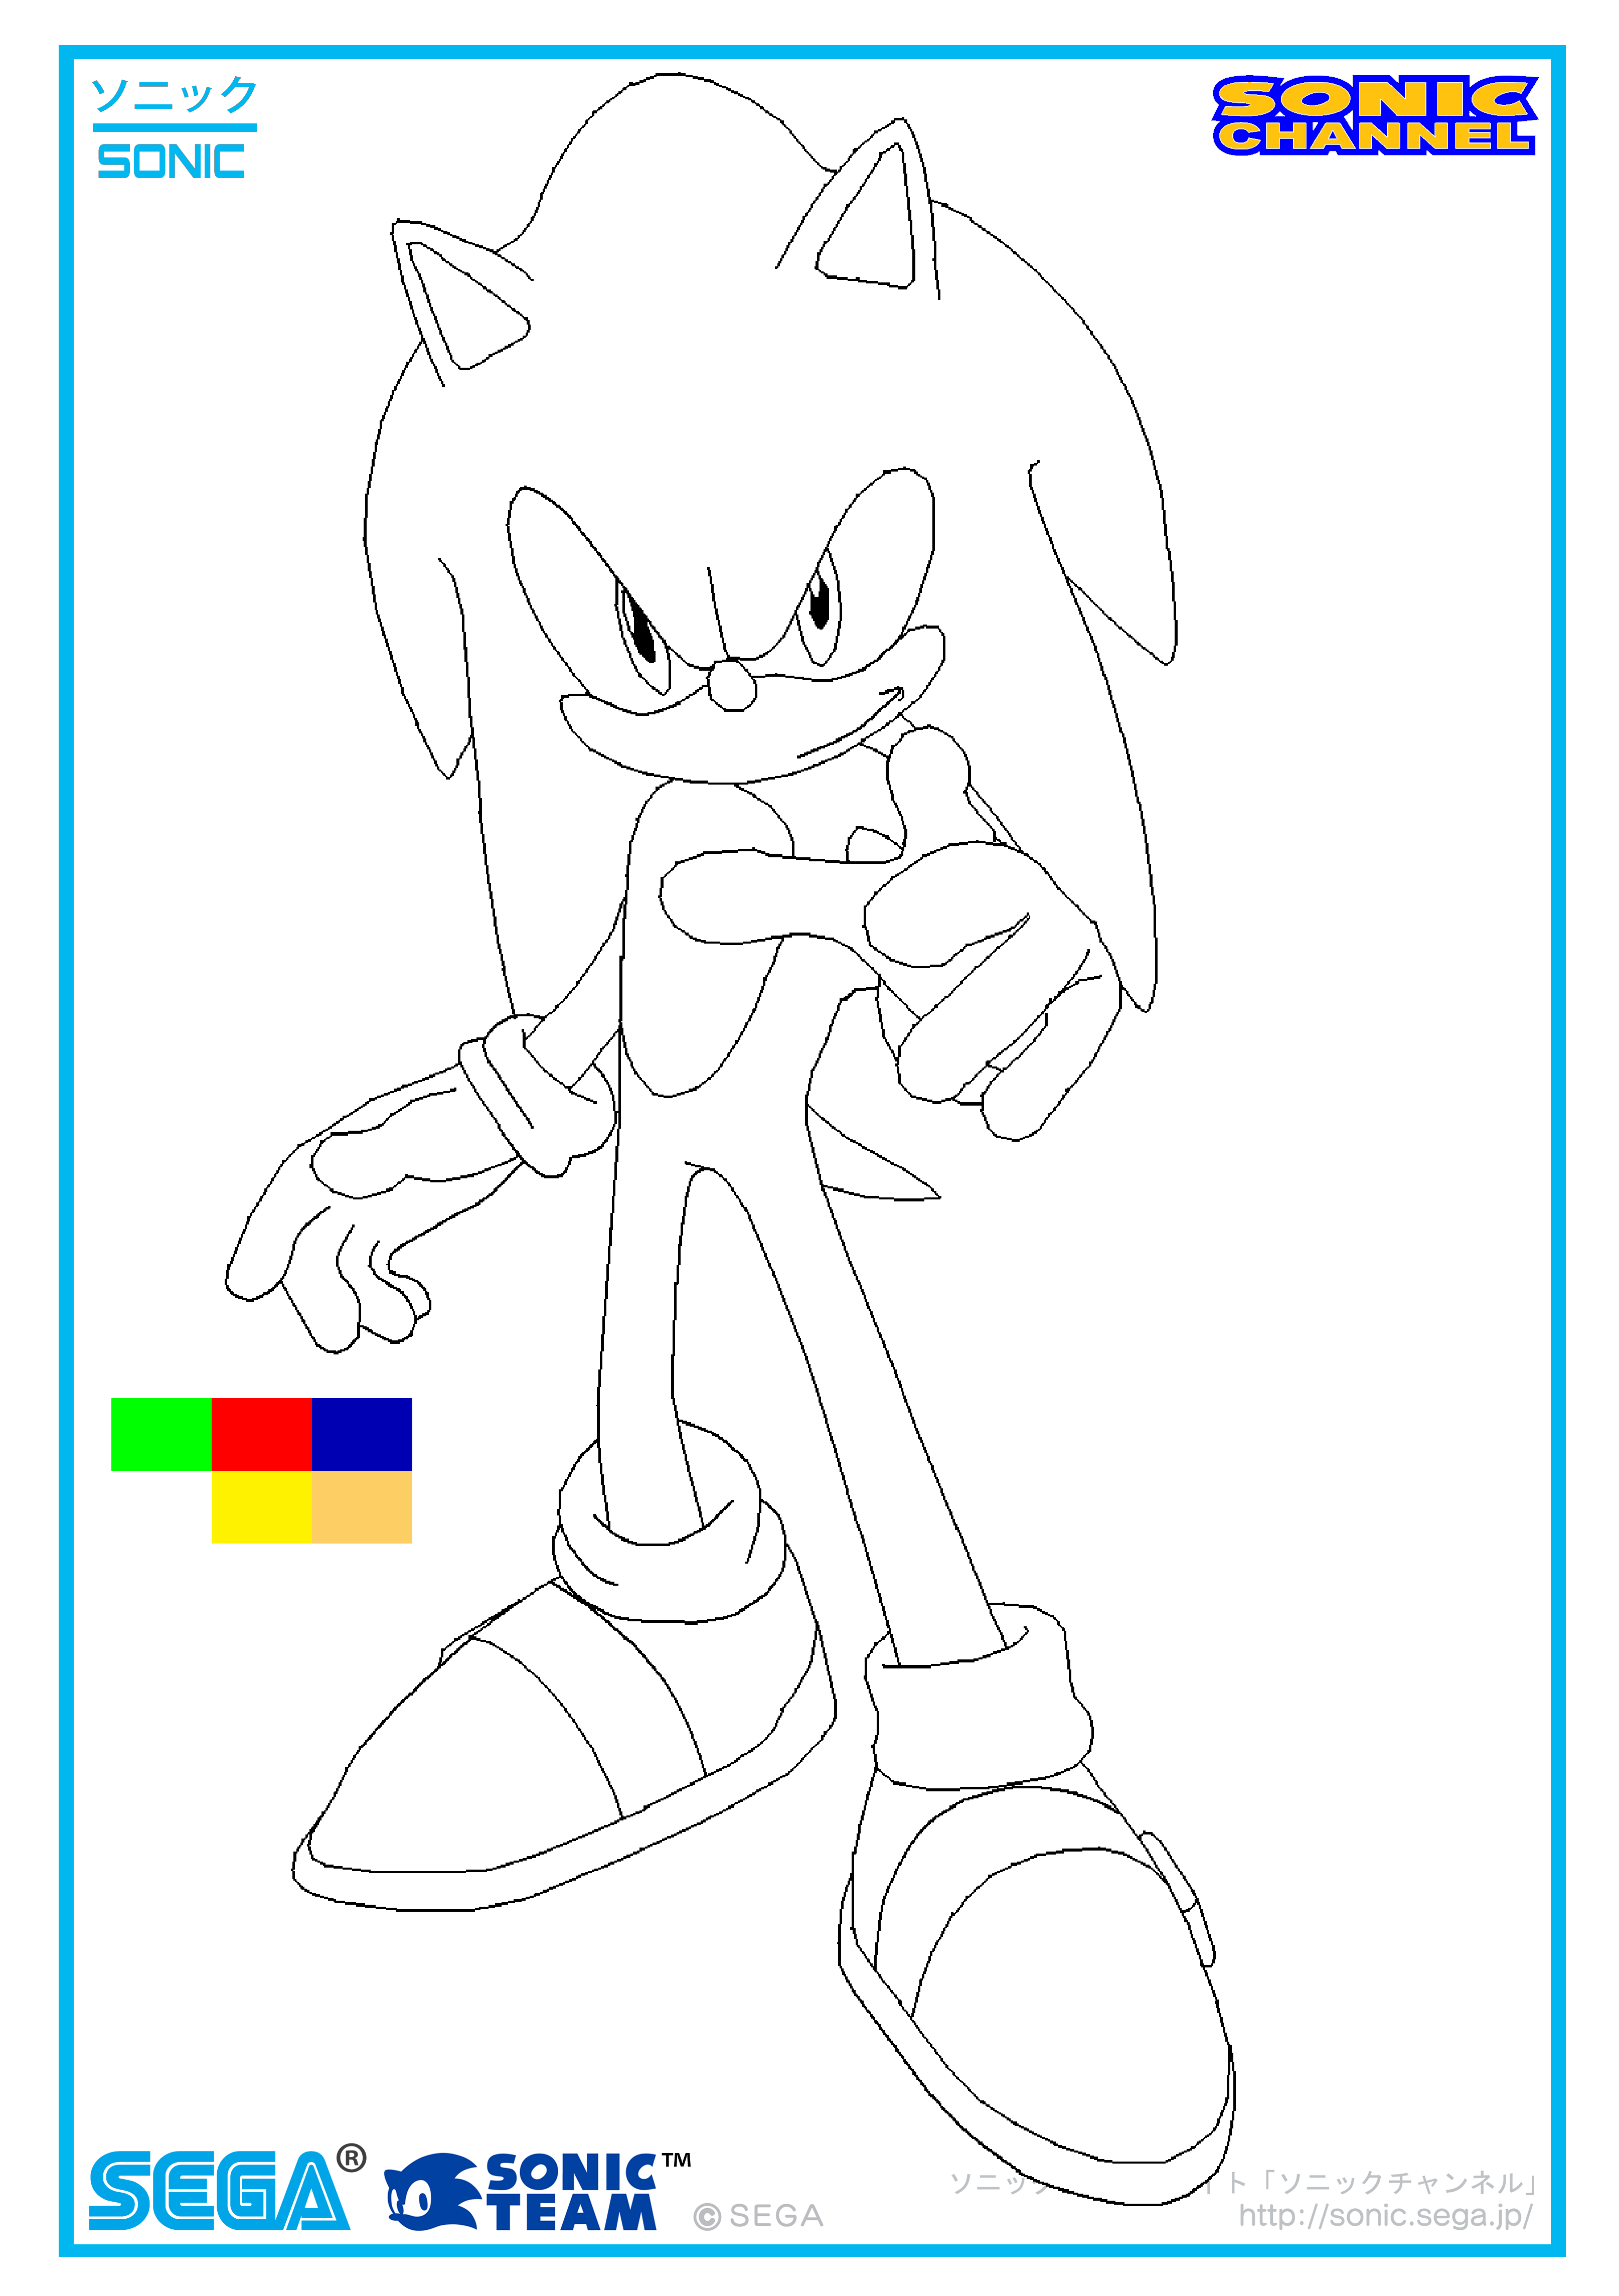 Coloring Pages Lego Sonic - icompuntoes